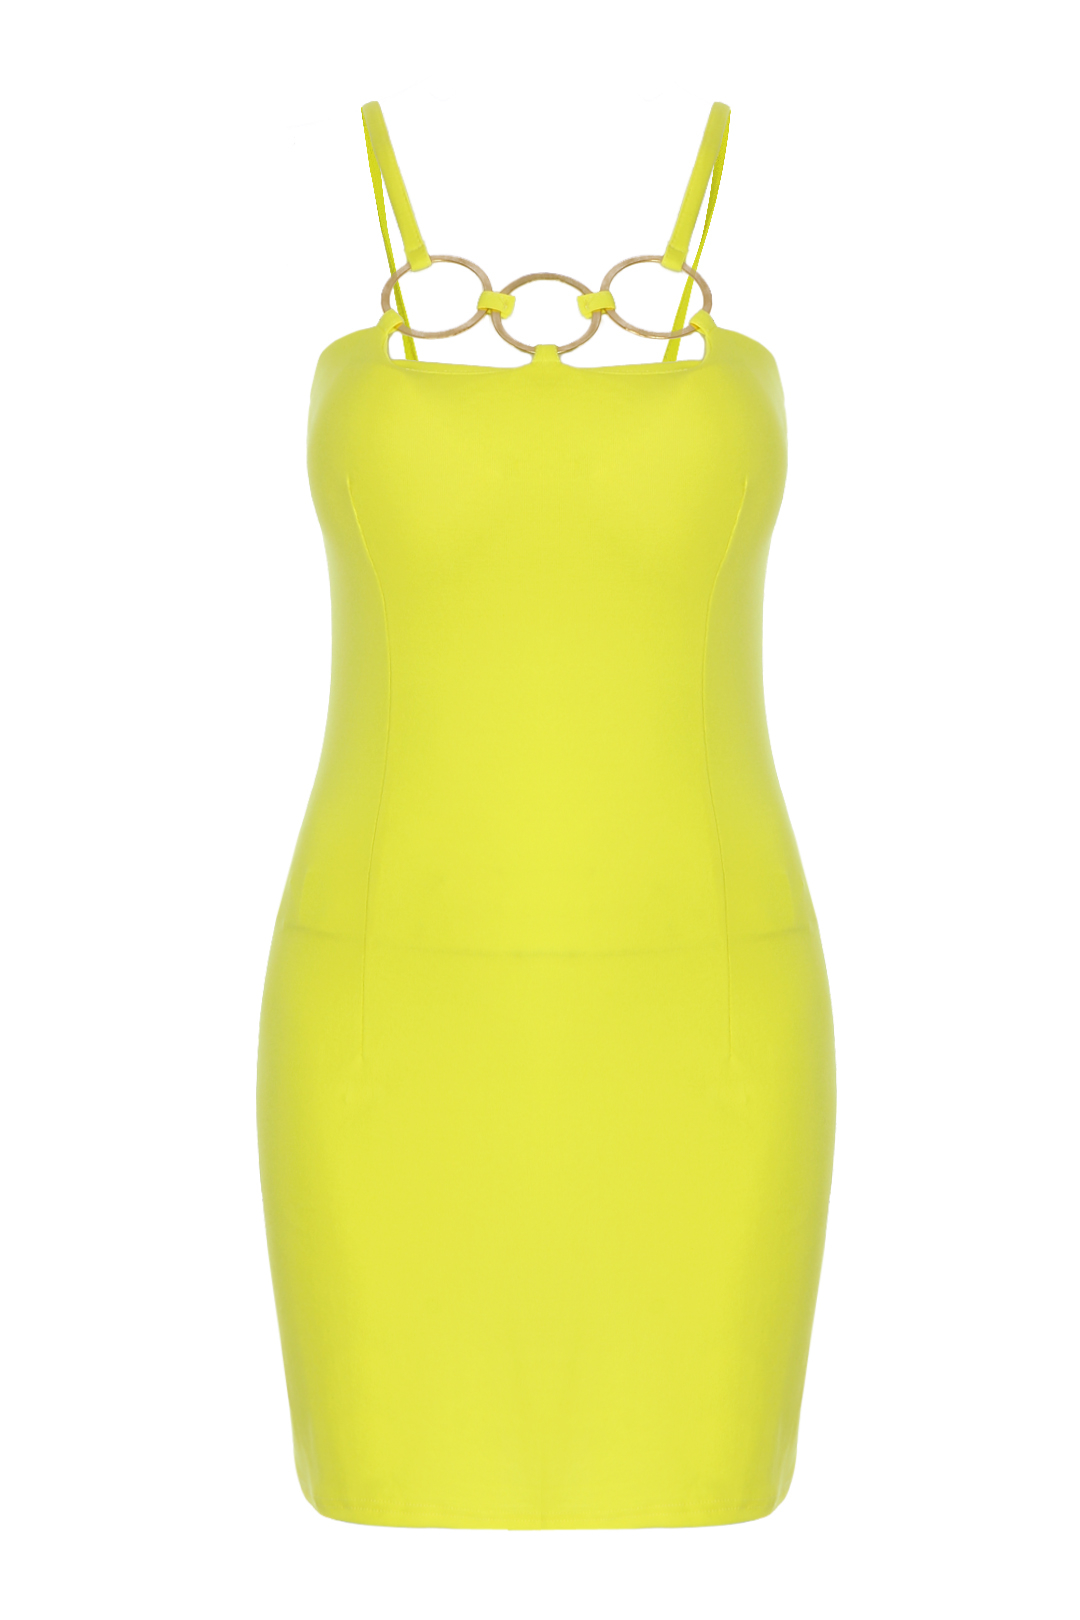 Yelleow Sexy Tube Cami Bodycon Dress with Circle Front